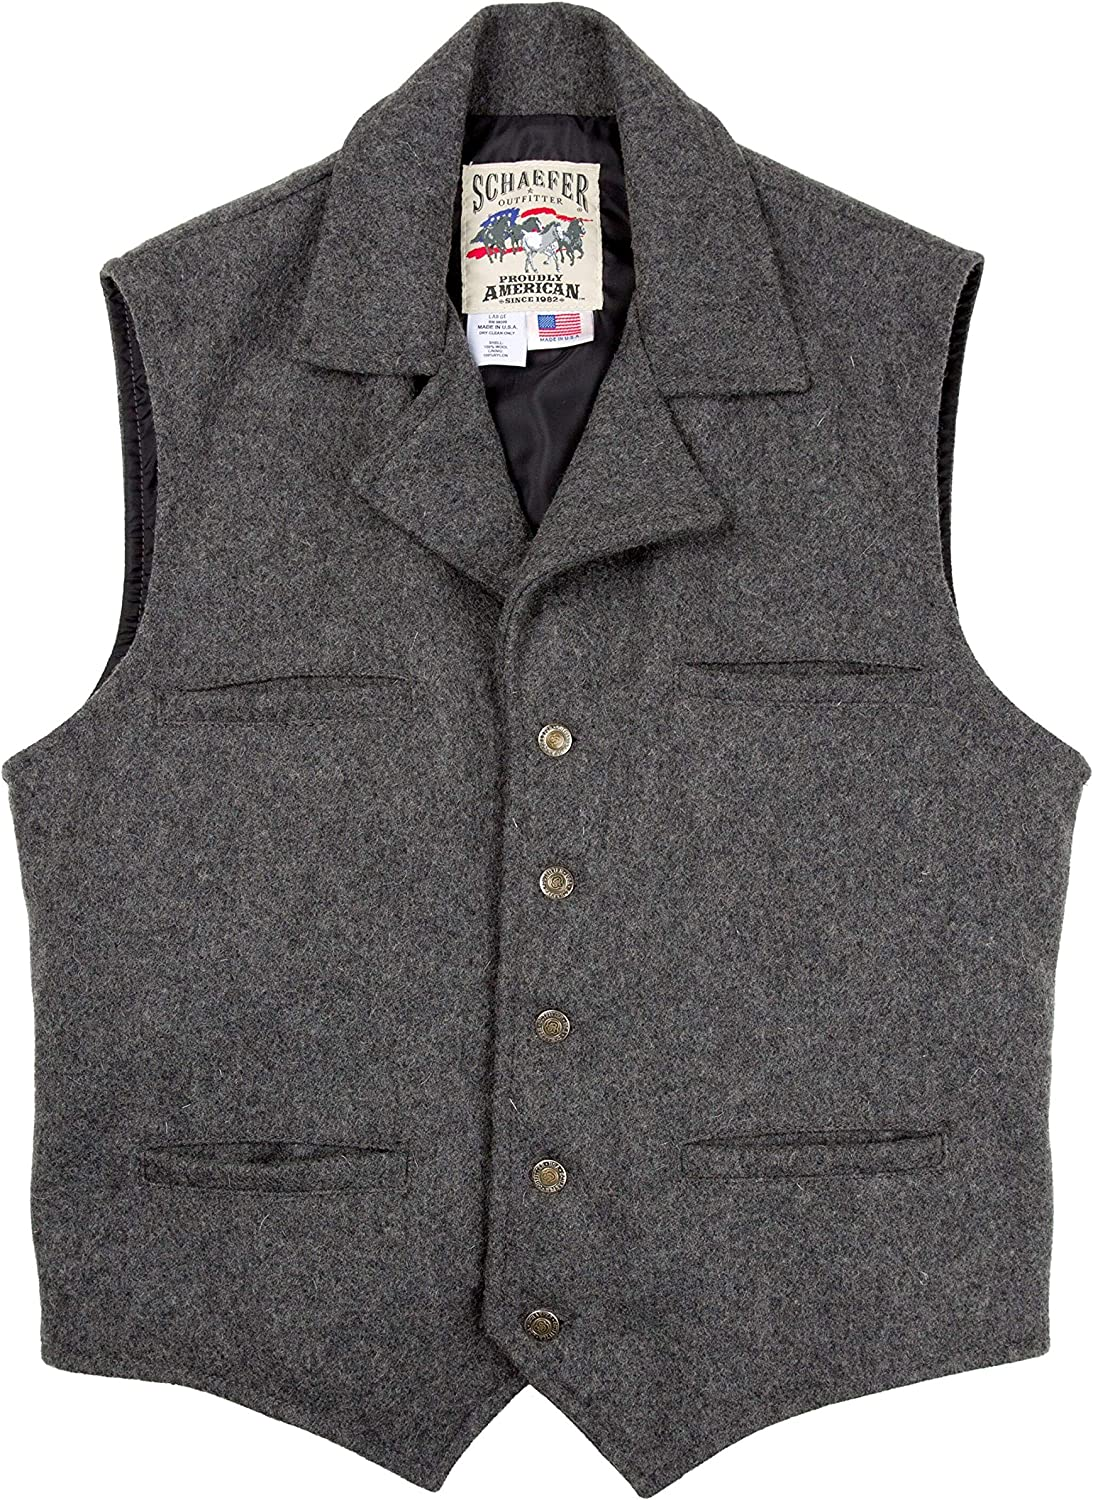 Victorian Men's Clothing, Fashion – 1840 to 1890s Schaefer Outfitters Vest for Men Classic Fitted Ranchwear Wool Vest 805 Cattle Baron Vest $140.00 AT vintagedancer.com